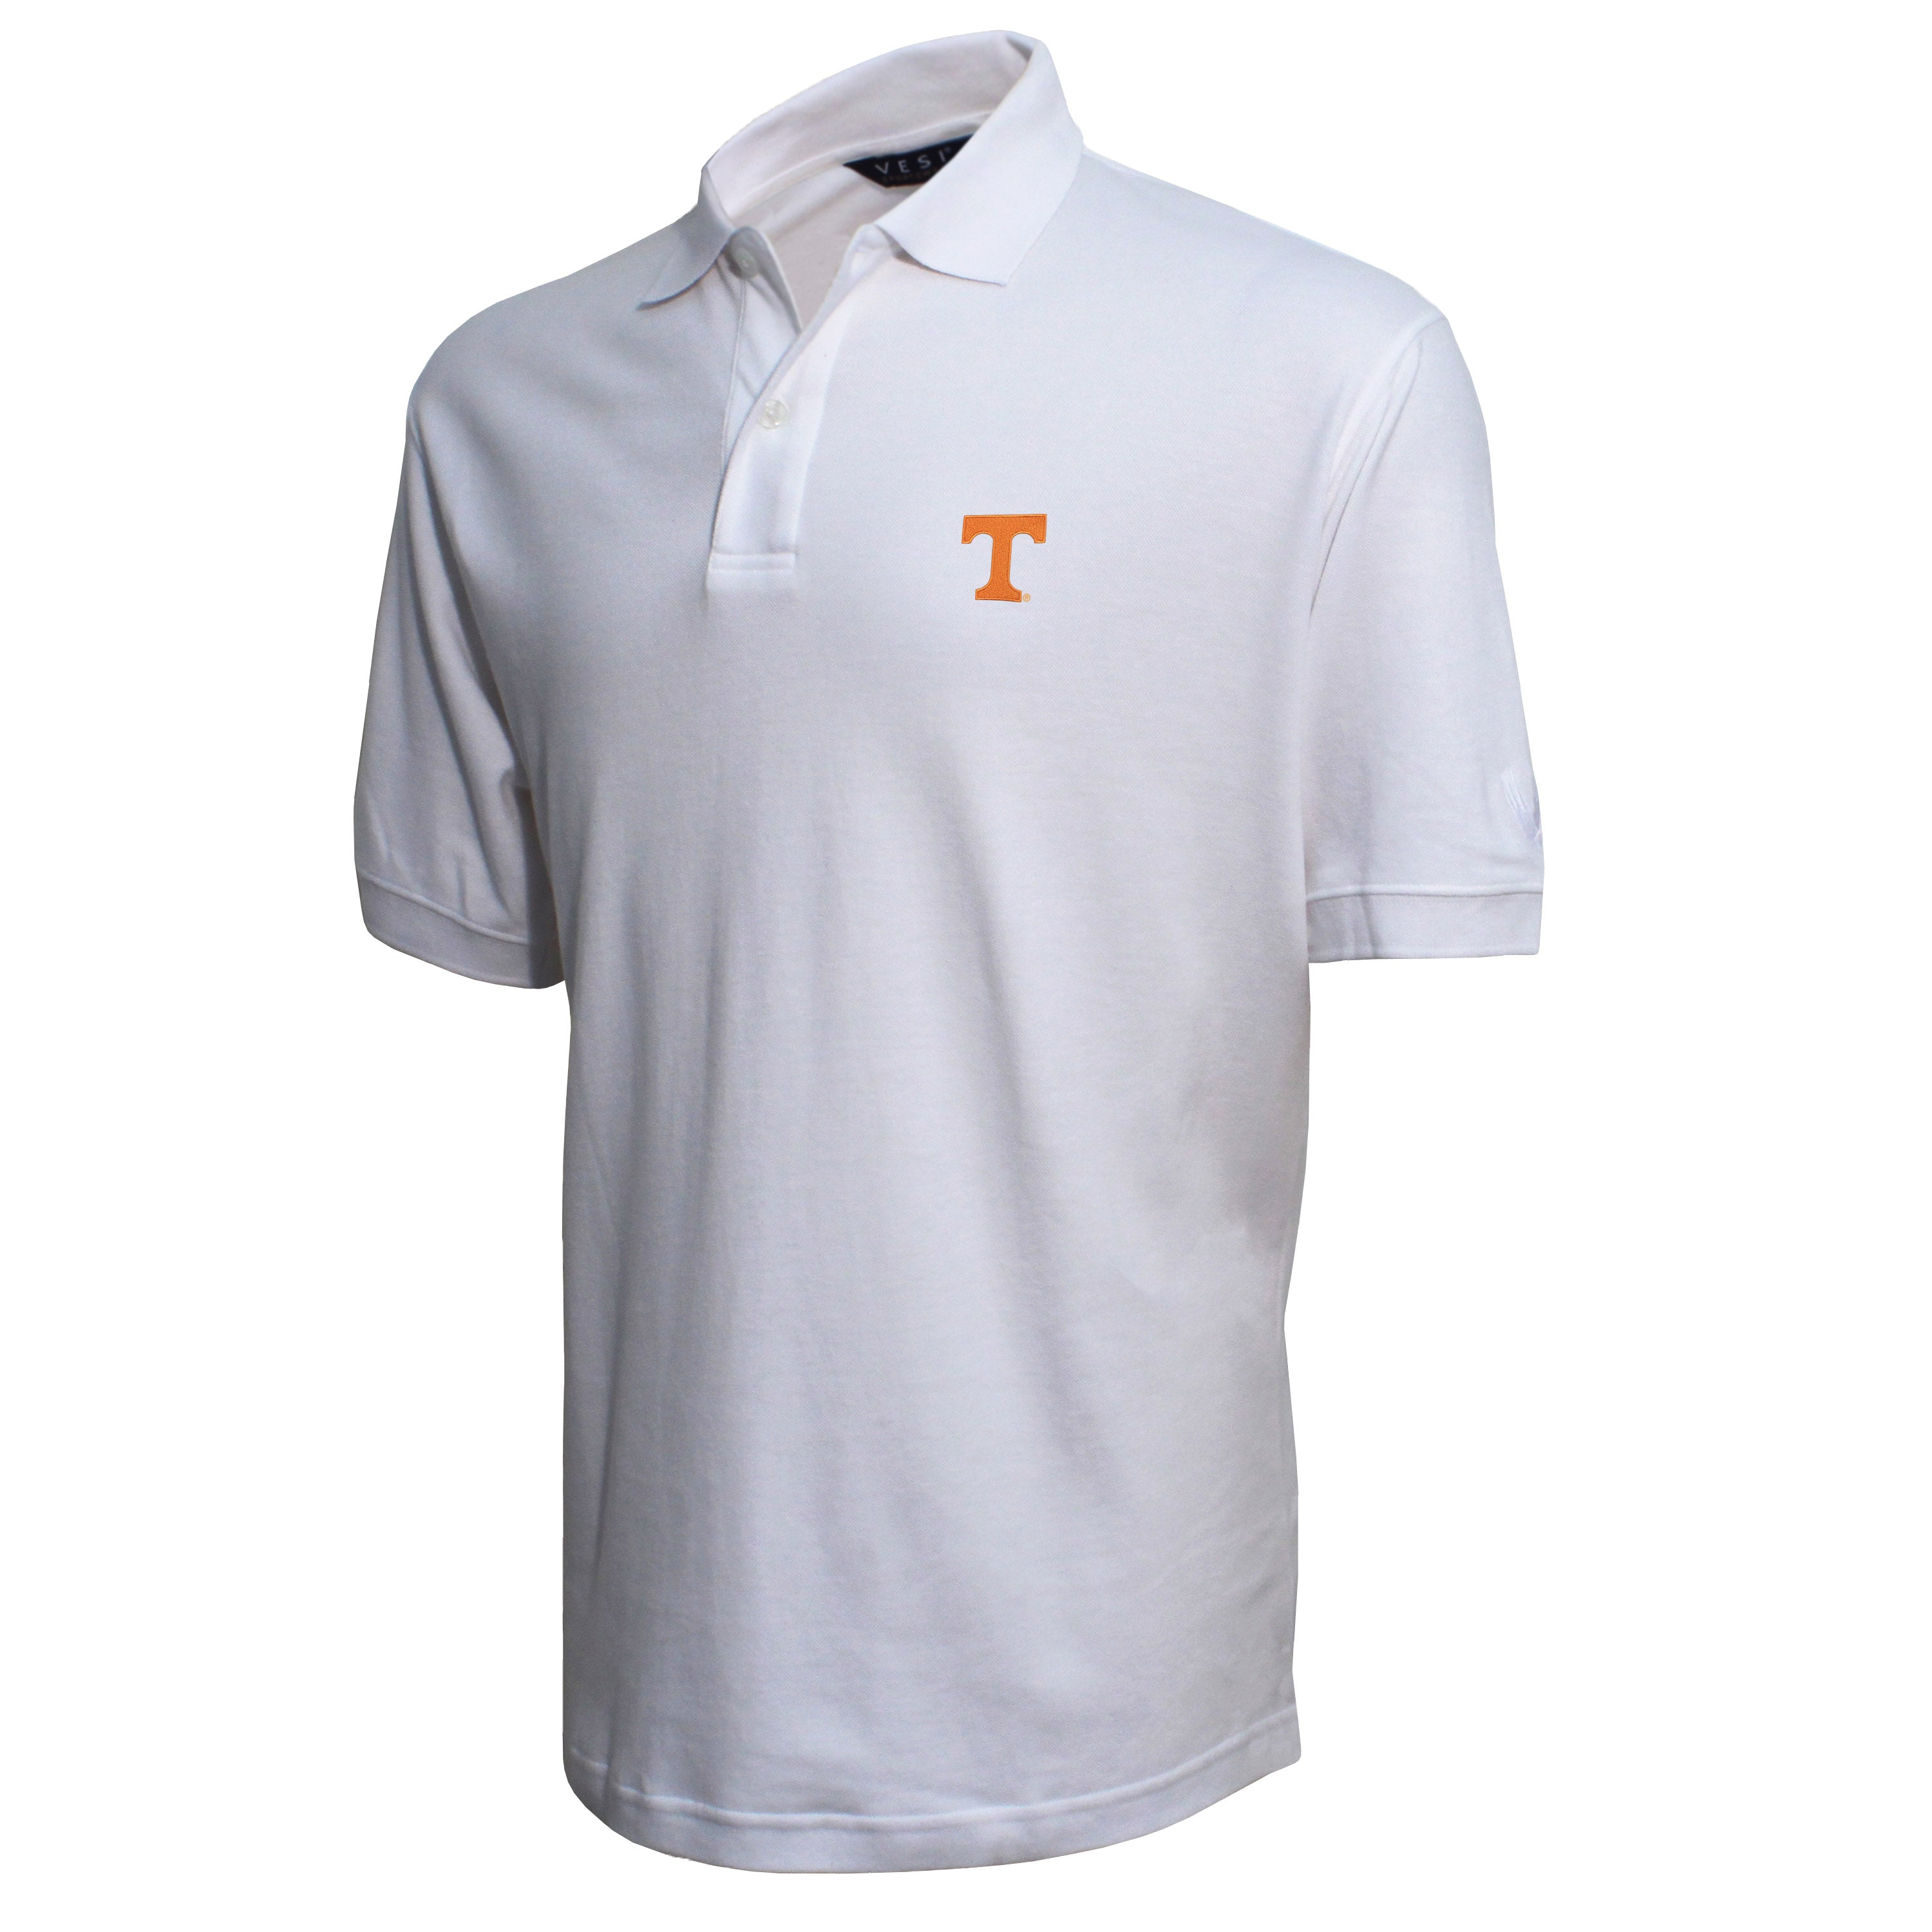 Vesi Tennessee Men's White Pique Polo Shirt